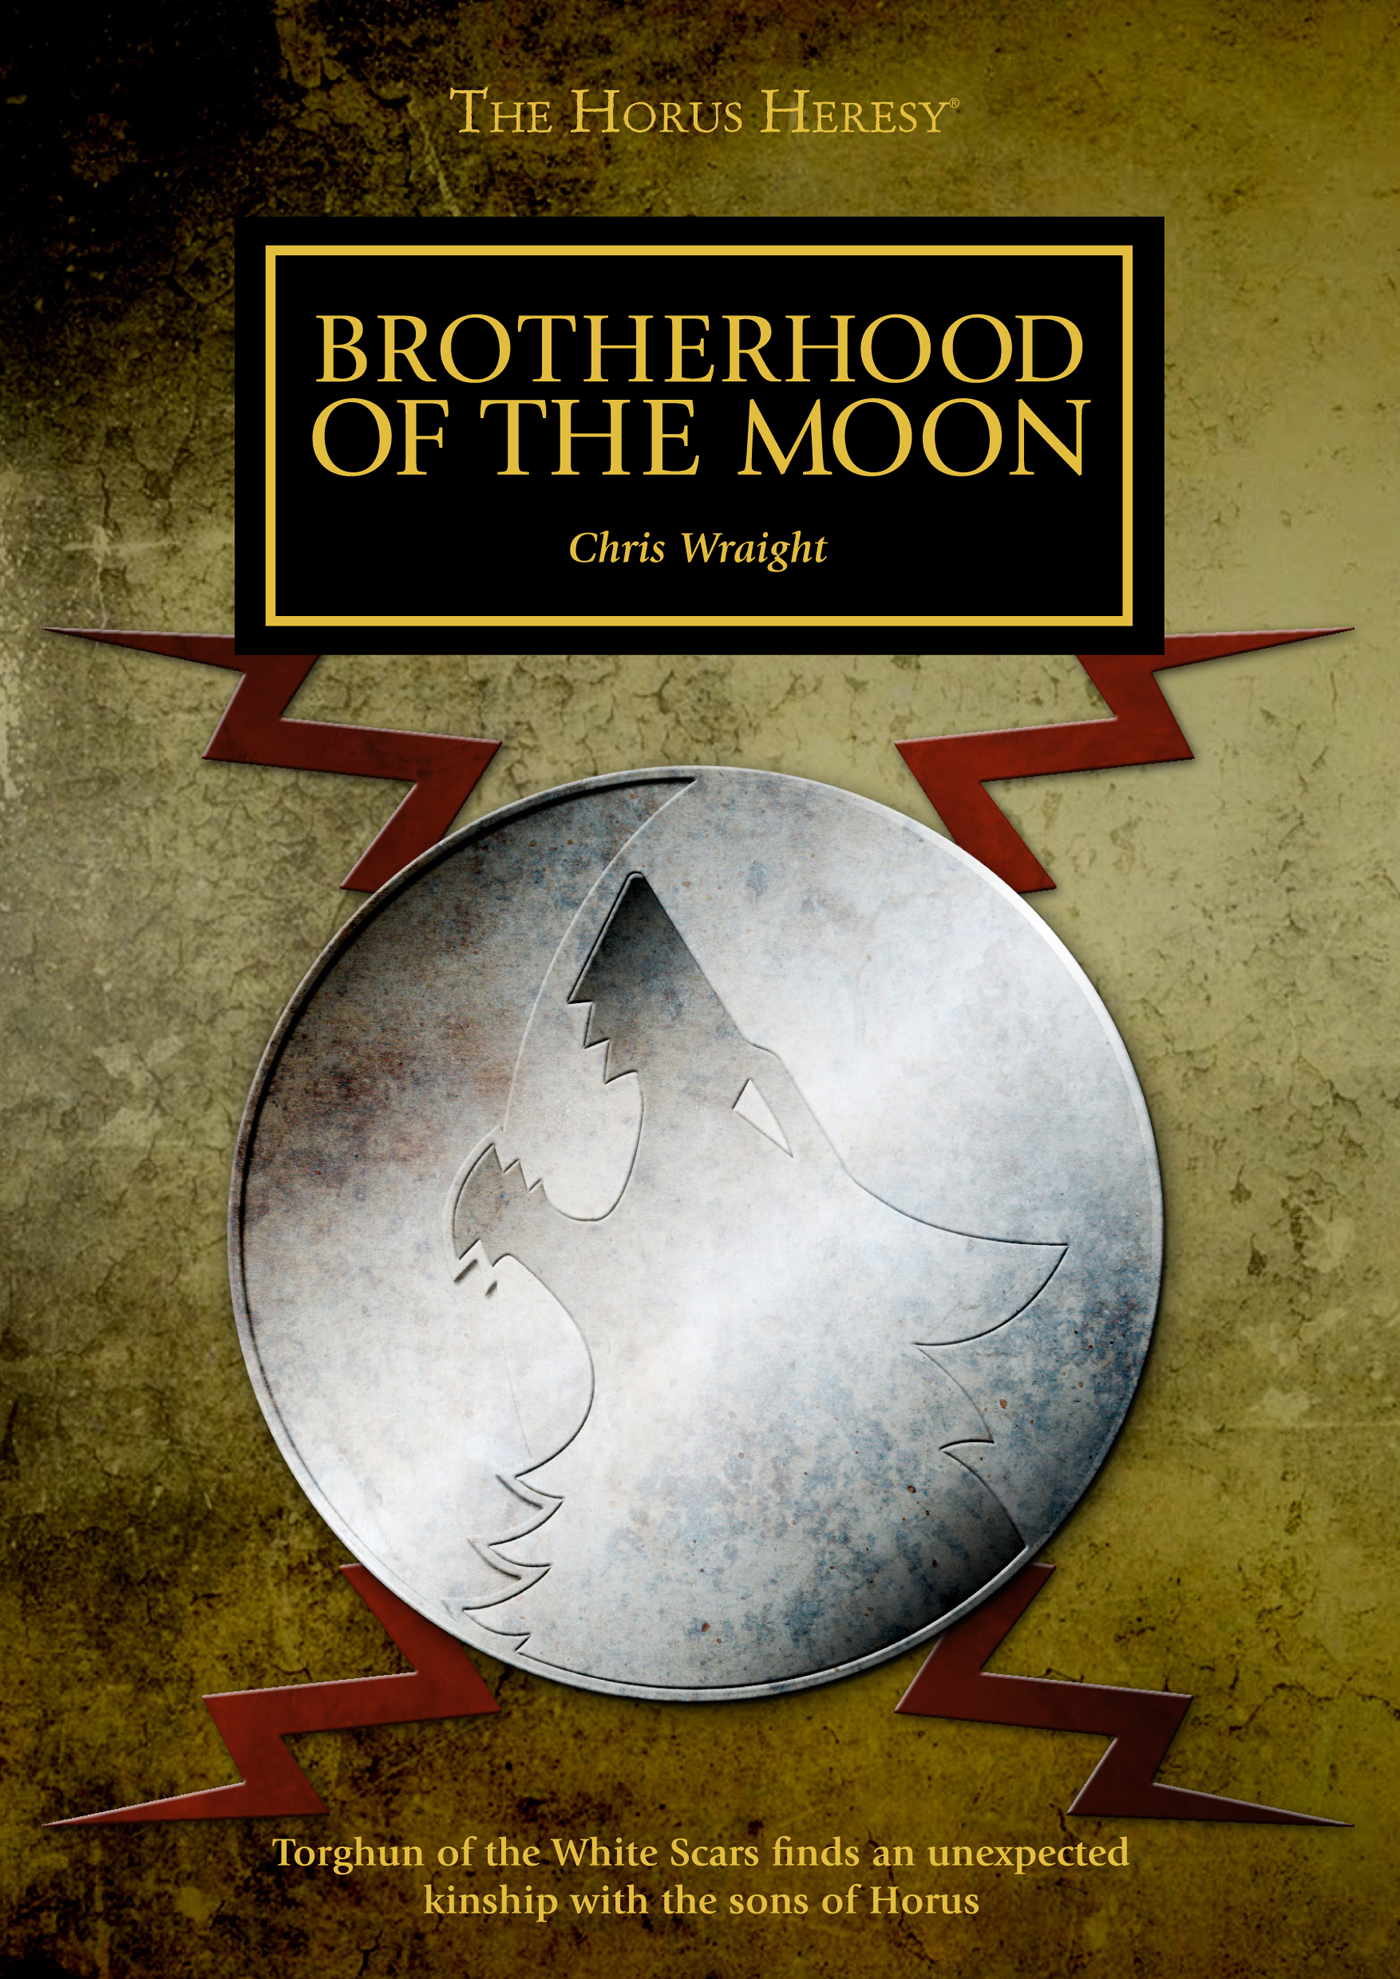 Brotherhood of the Moon by Chris Wraight